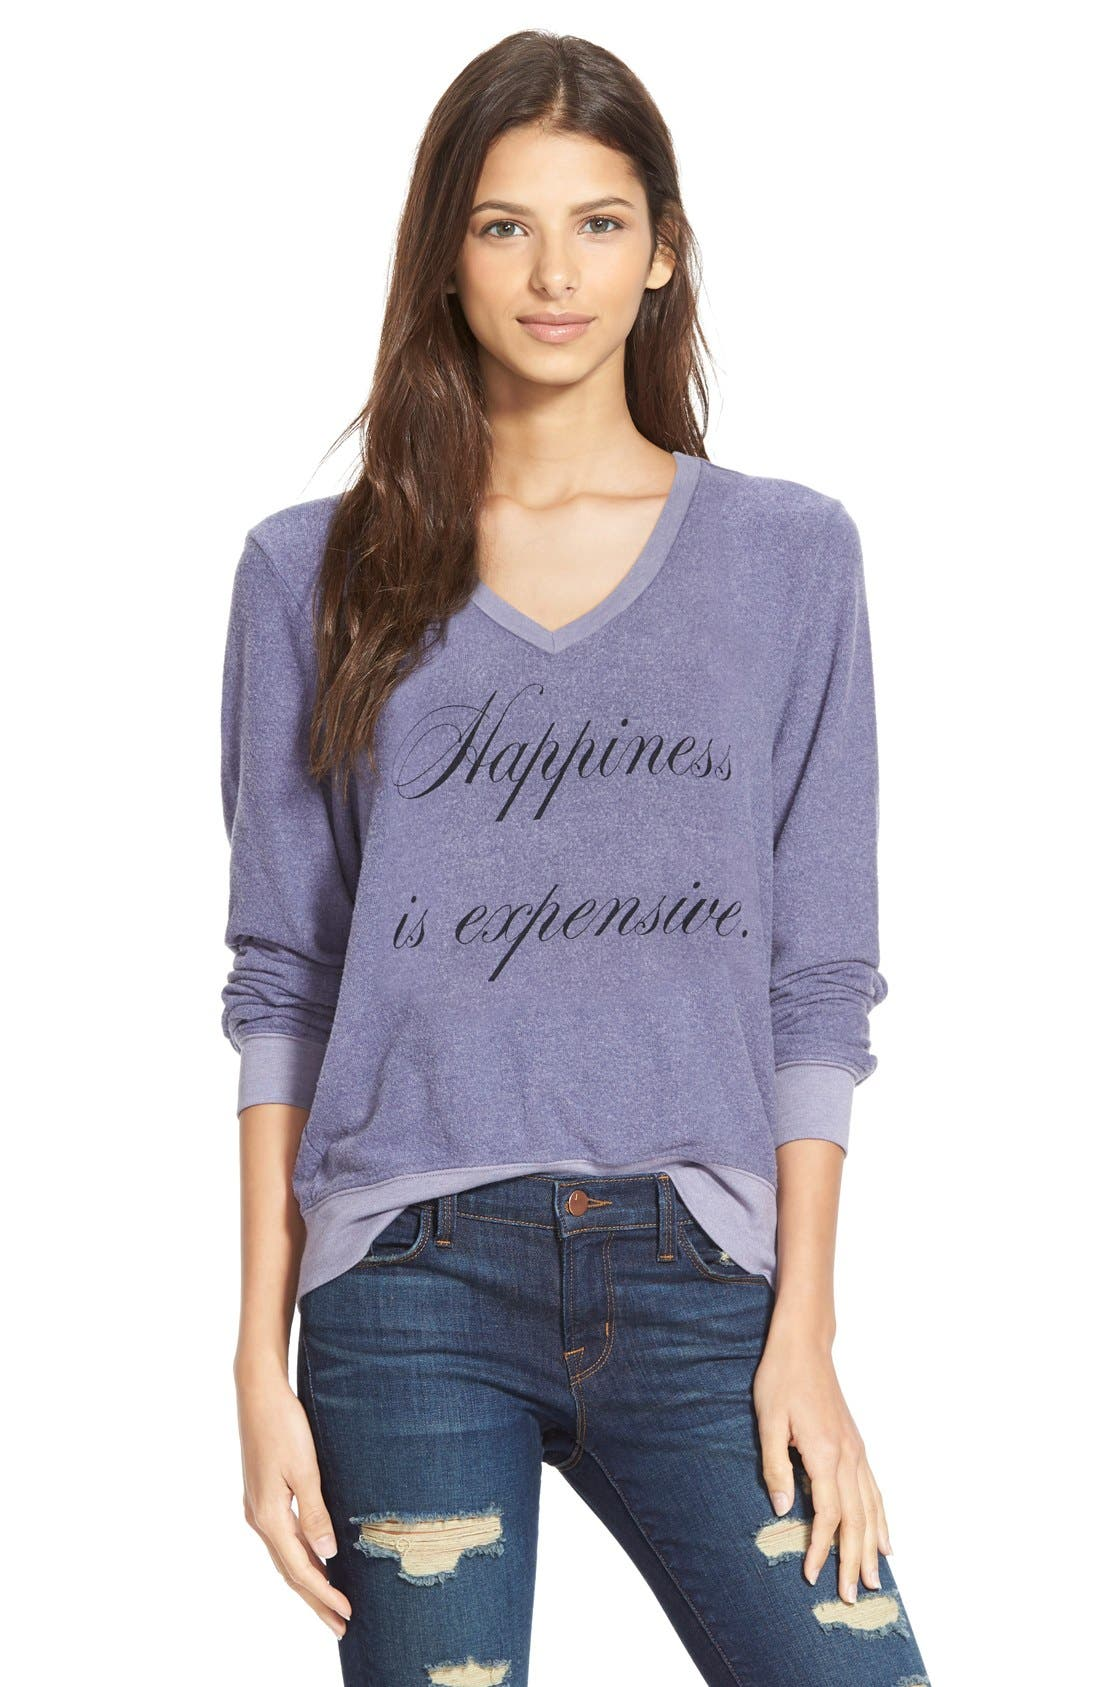 Main Image - Wildfox 'Baggy Beach Jumper - Happiness' Pullover